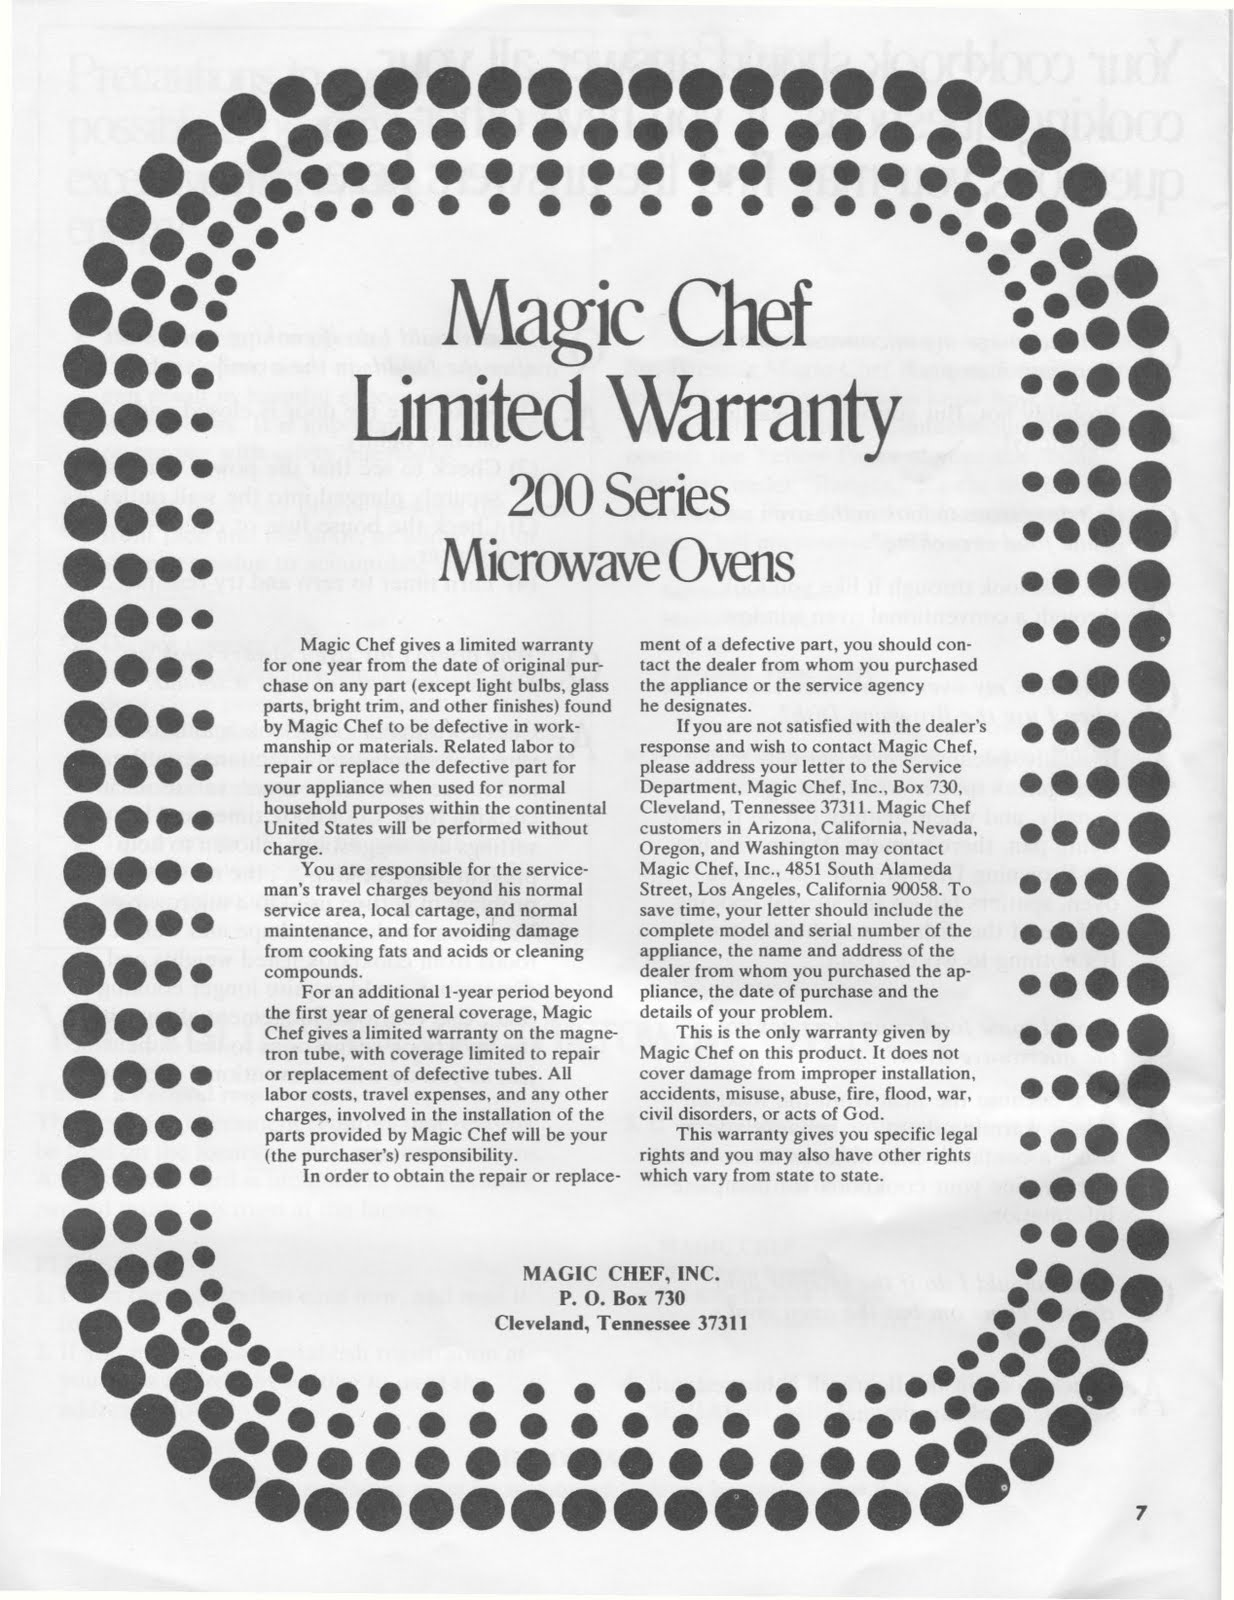 1983 Fleetwood Pace Arrow Owners Manuals: Magic Chef 200